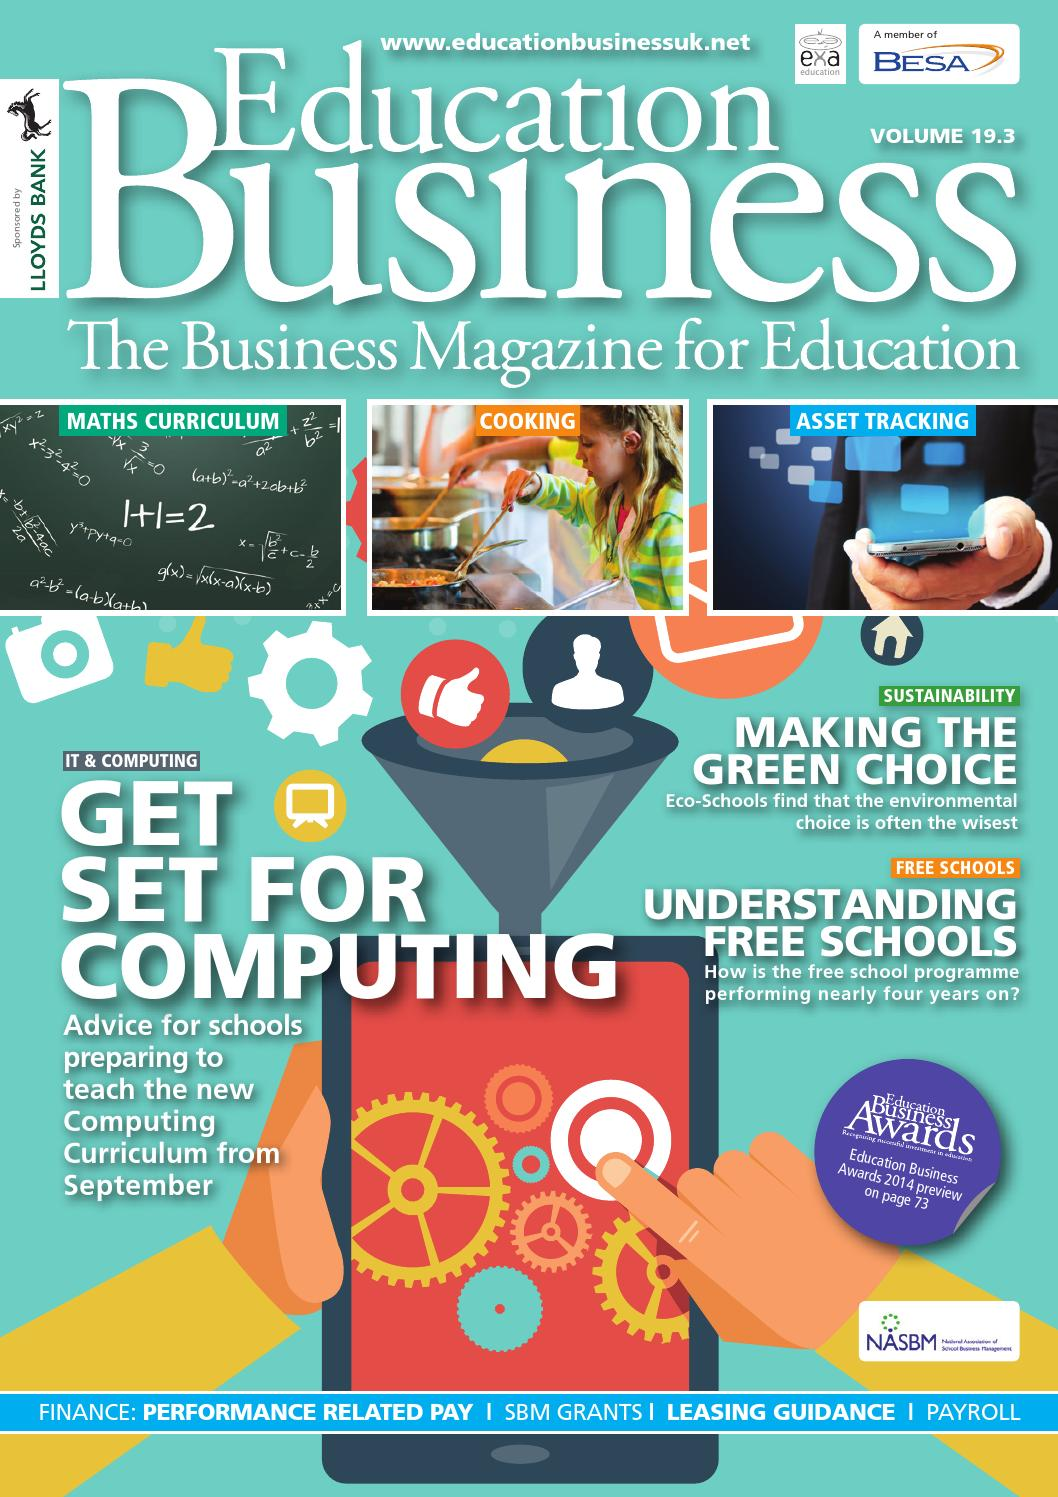 Education Business 19.3 by PSI Media - issuu